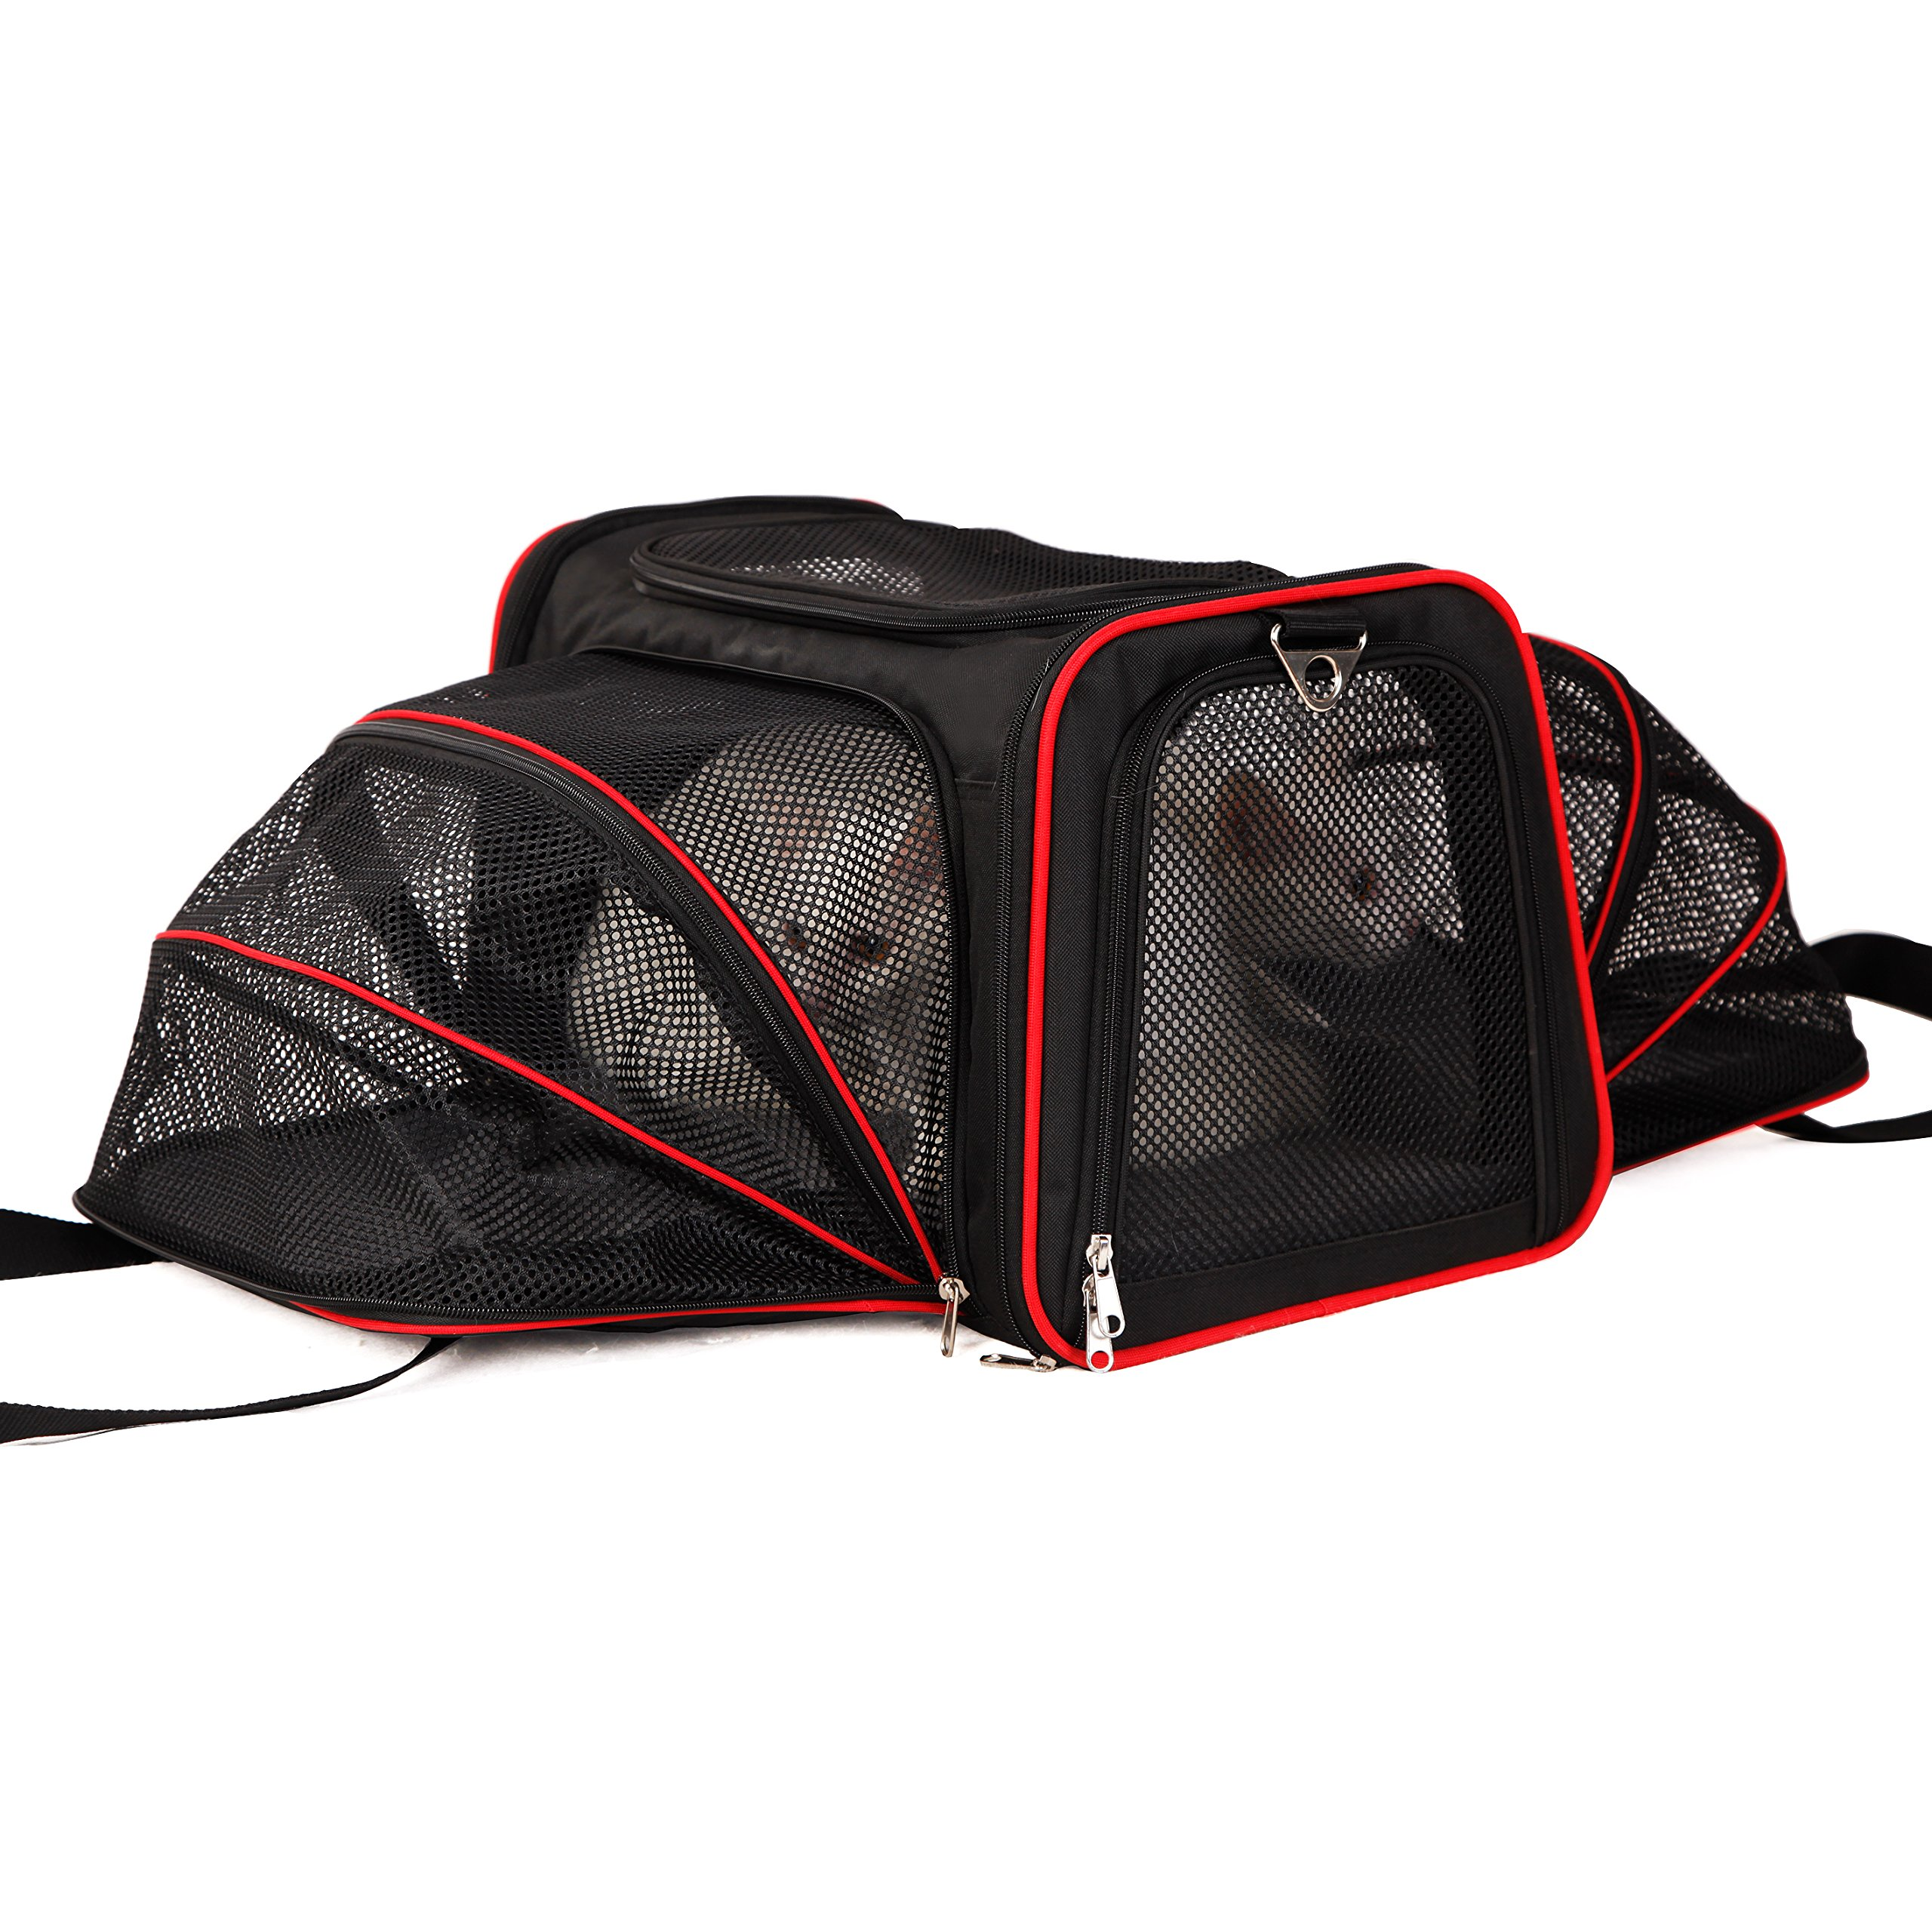 A4Pet Airline Approved Pet Carrier, Both Side Expandable, Top Loading Cats Small Dogs Puppy Small Animals